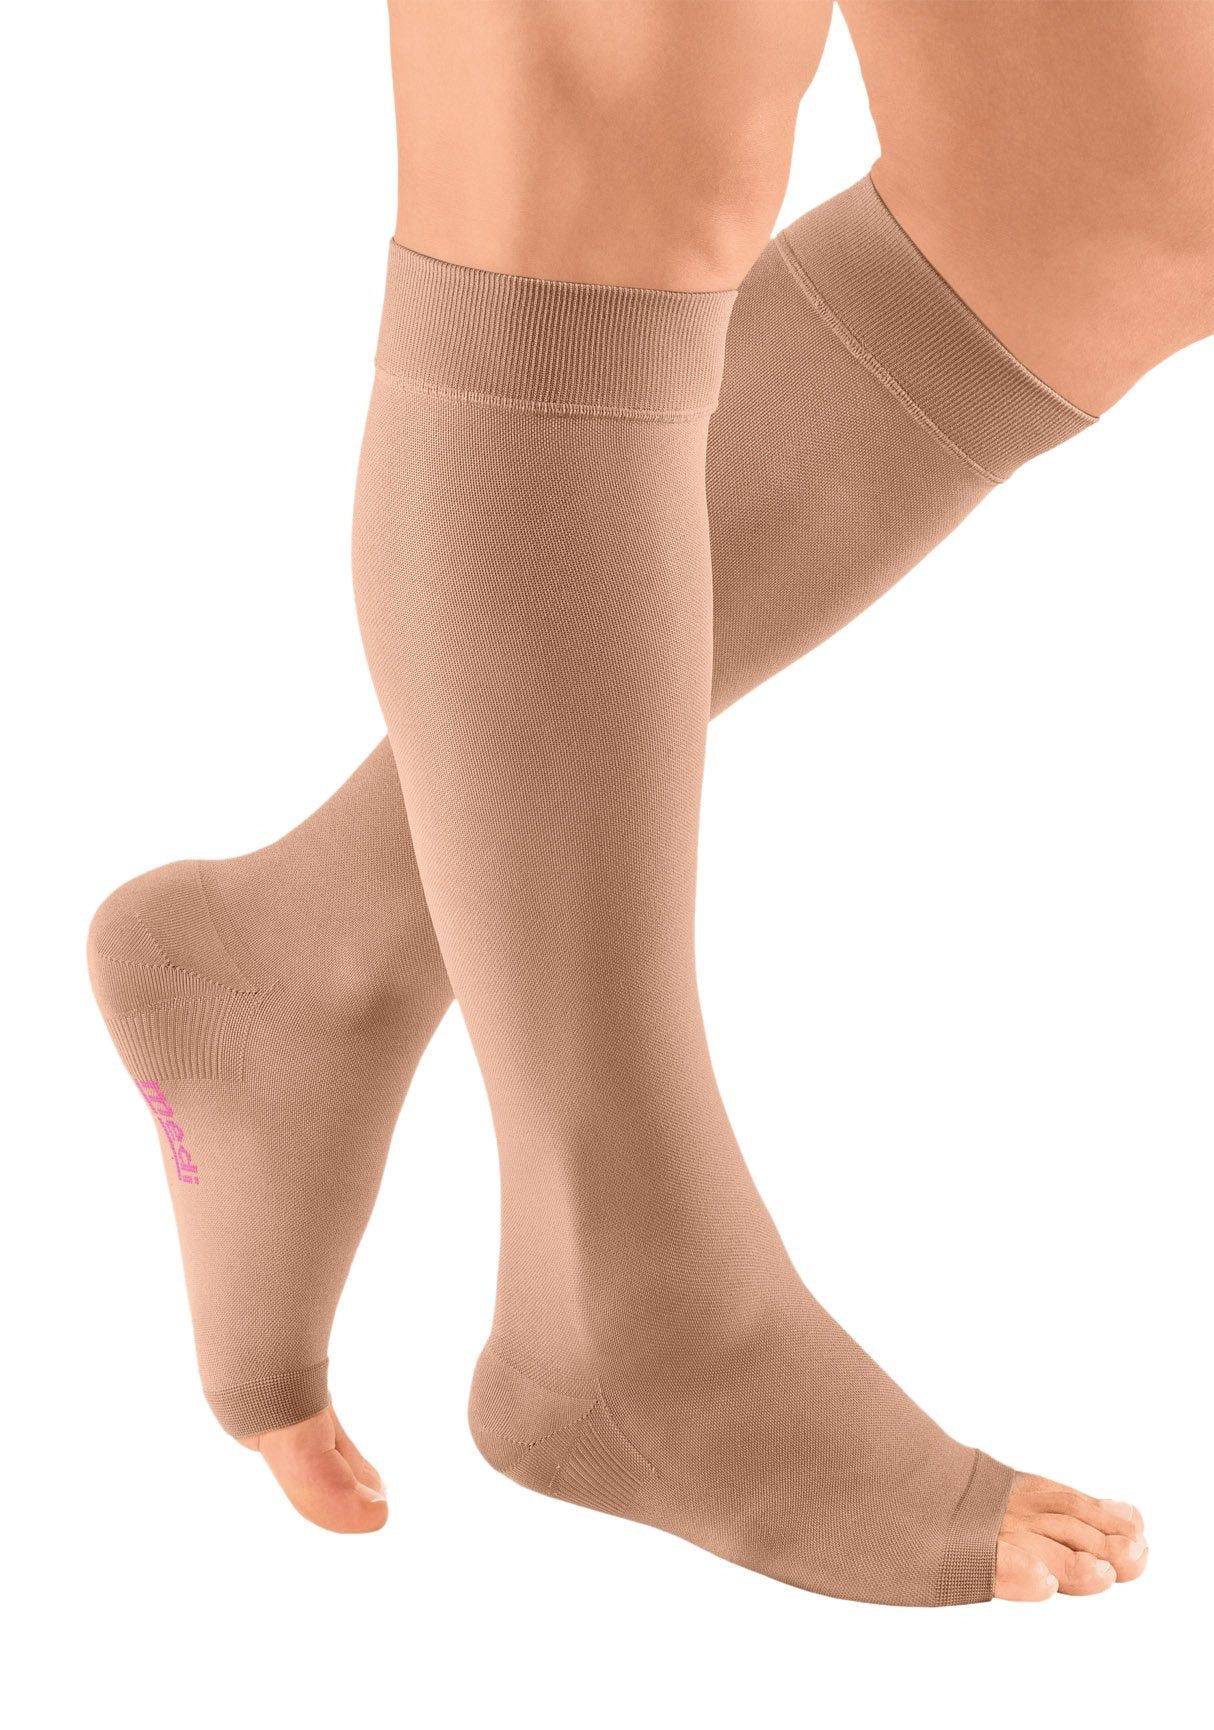 mediven plus 20-30 mmHg calf extra-wide open toe petite